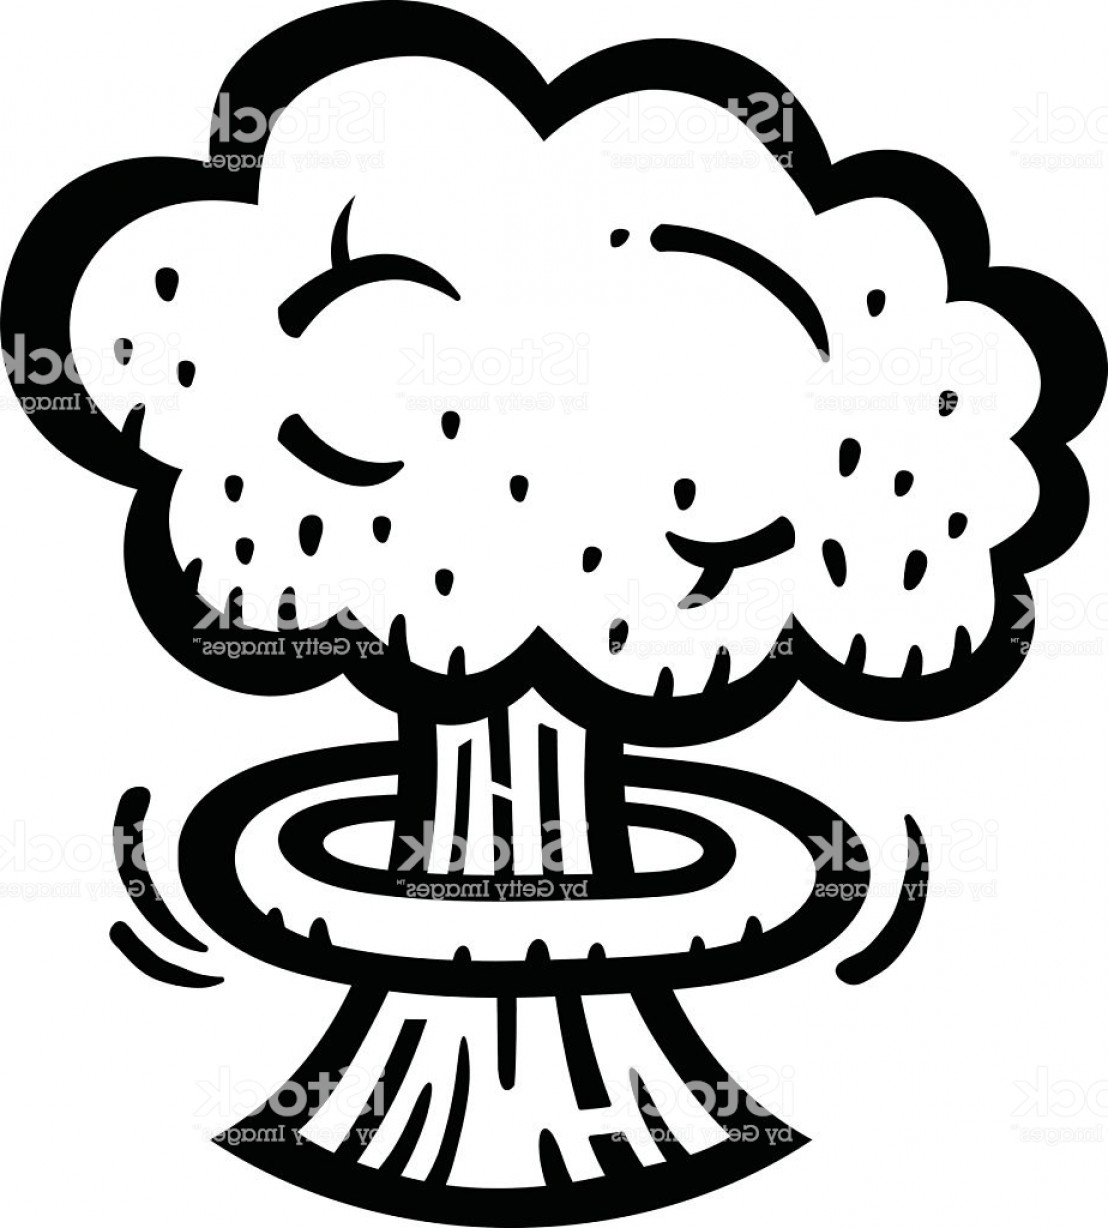 Atomic Bomb Explosion Vector: Mushroom Cloud Atomic Nuclear Bomb Explosion Fallout Vector Icon Gm